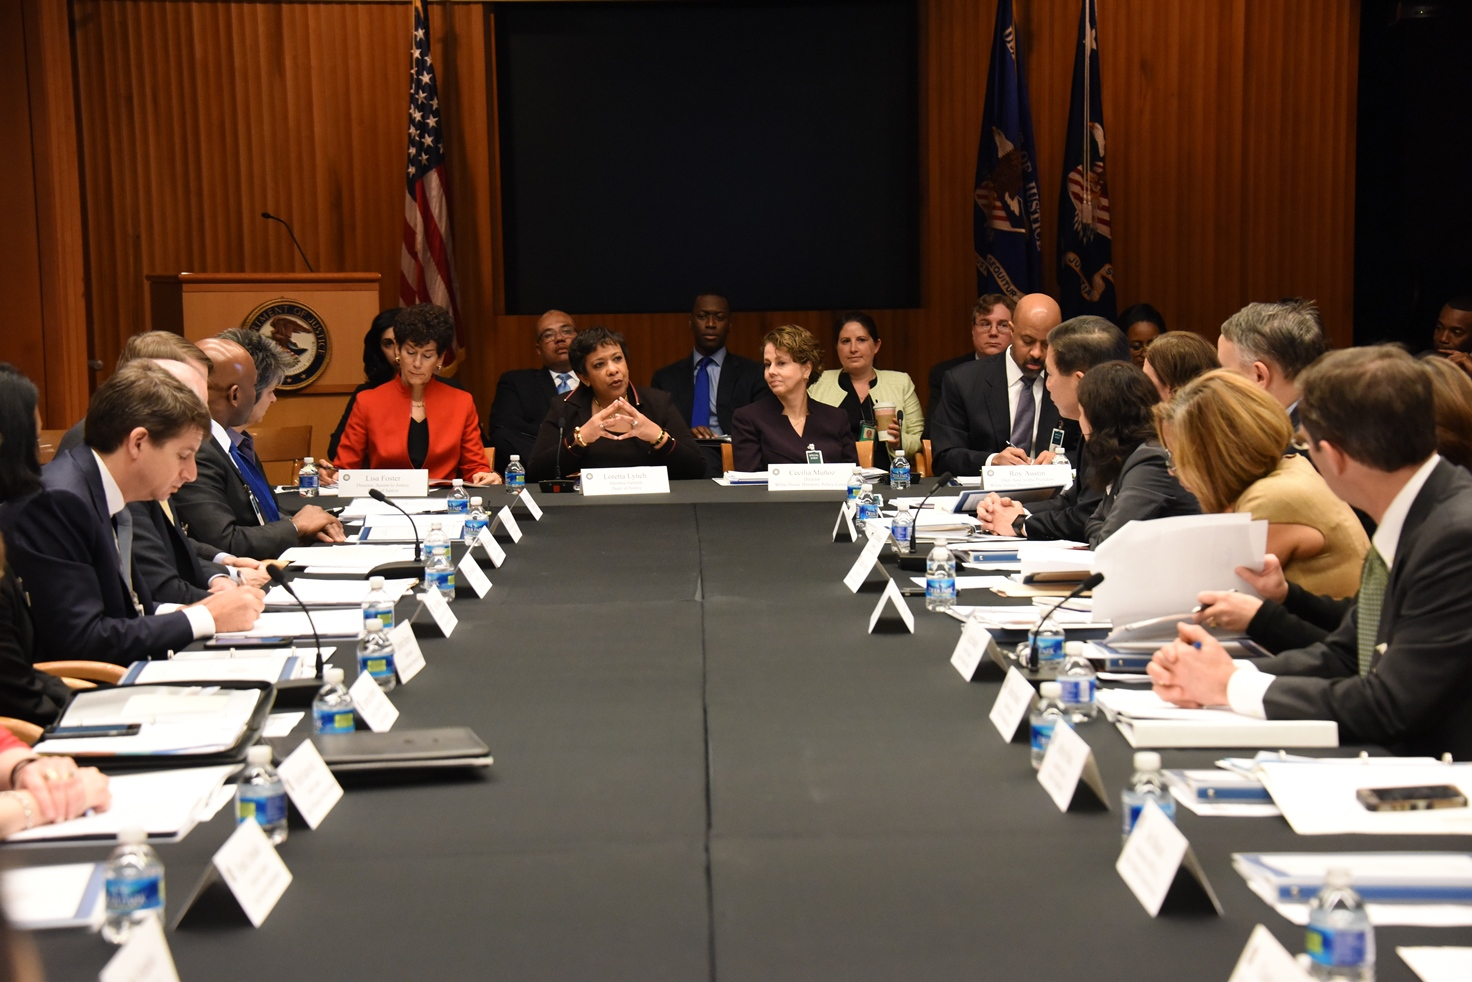 Attorney General Loretta E. Lynch and White House Director of Domestic Policy Council Cecilia Muñoz host the Inaugural White House Legal Aid Interagency Roundtable.